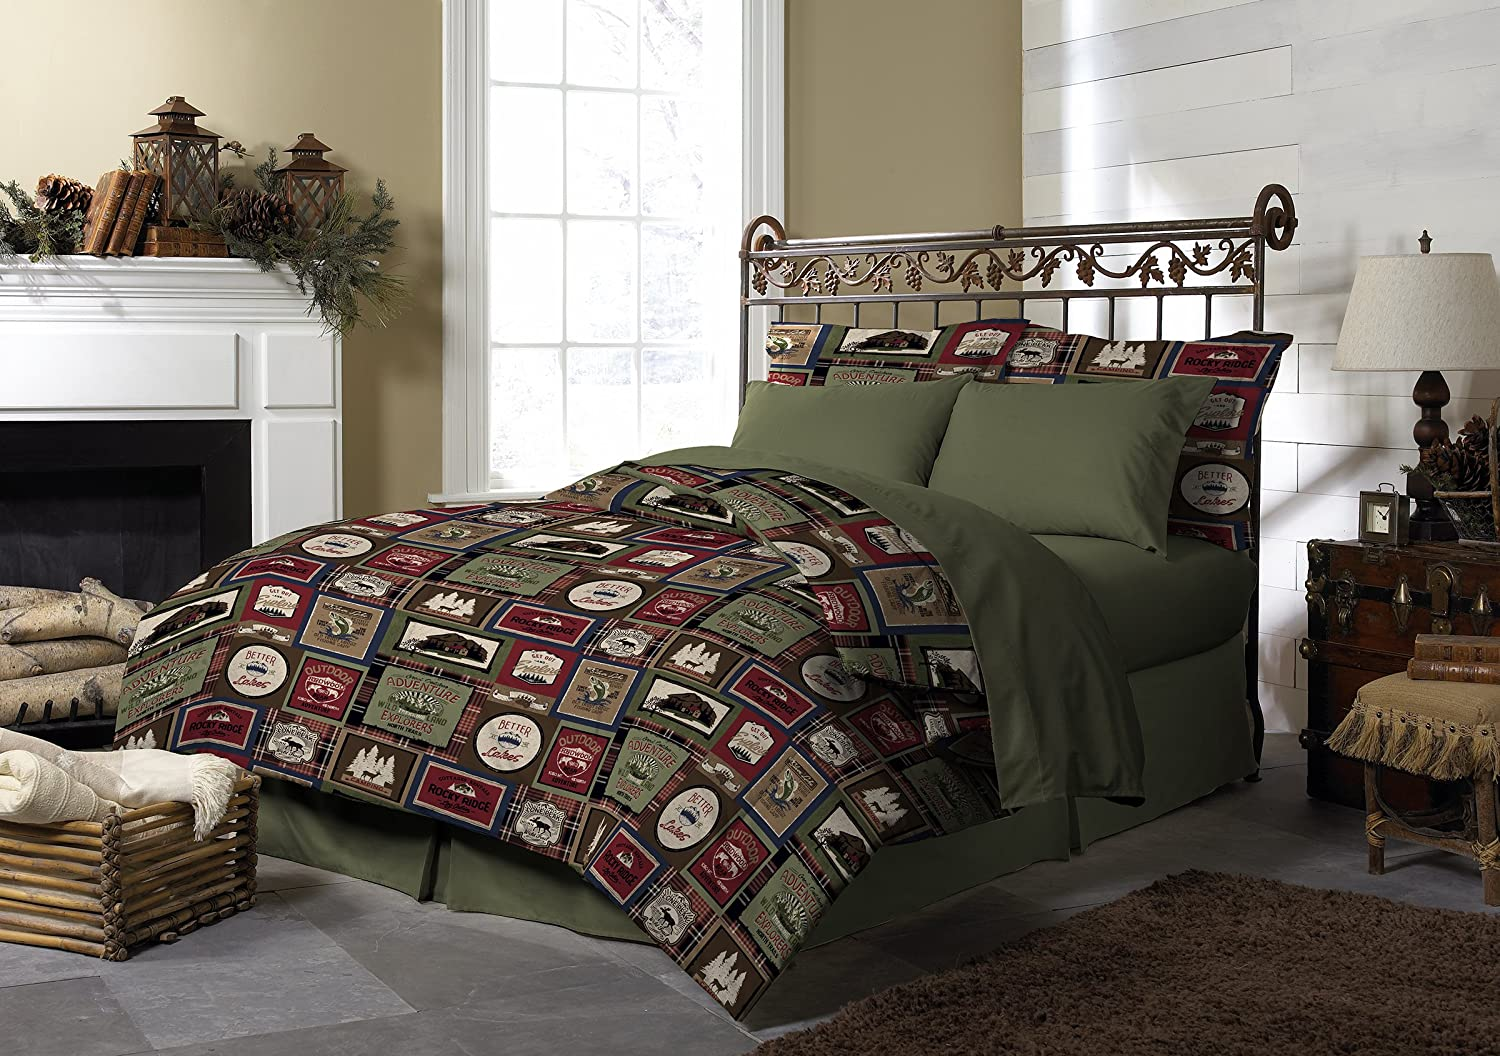 Pine Creek Lodge Comforter Set Including Shams - Premium Luxury Bed Spread, Rustic Southwestern Style Perfect for Hunters, Cabins and Lodges (Forest Lodge, Twin)